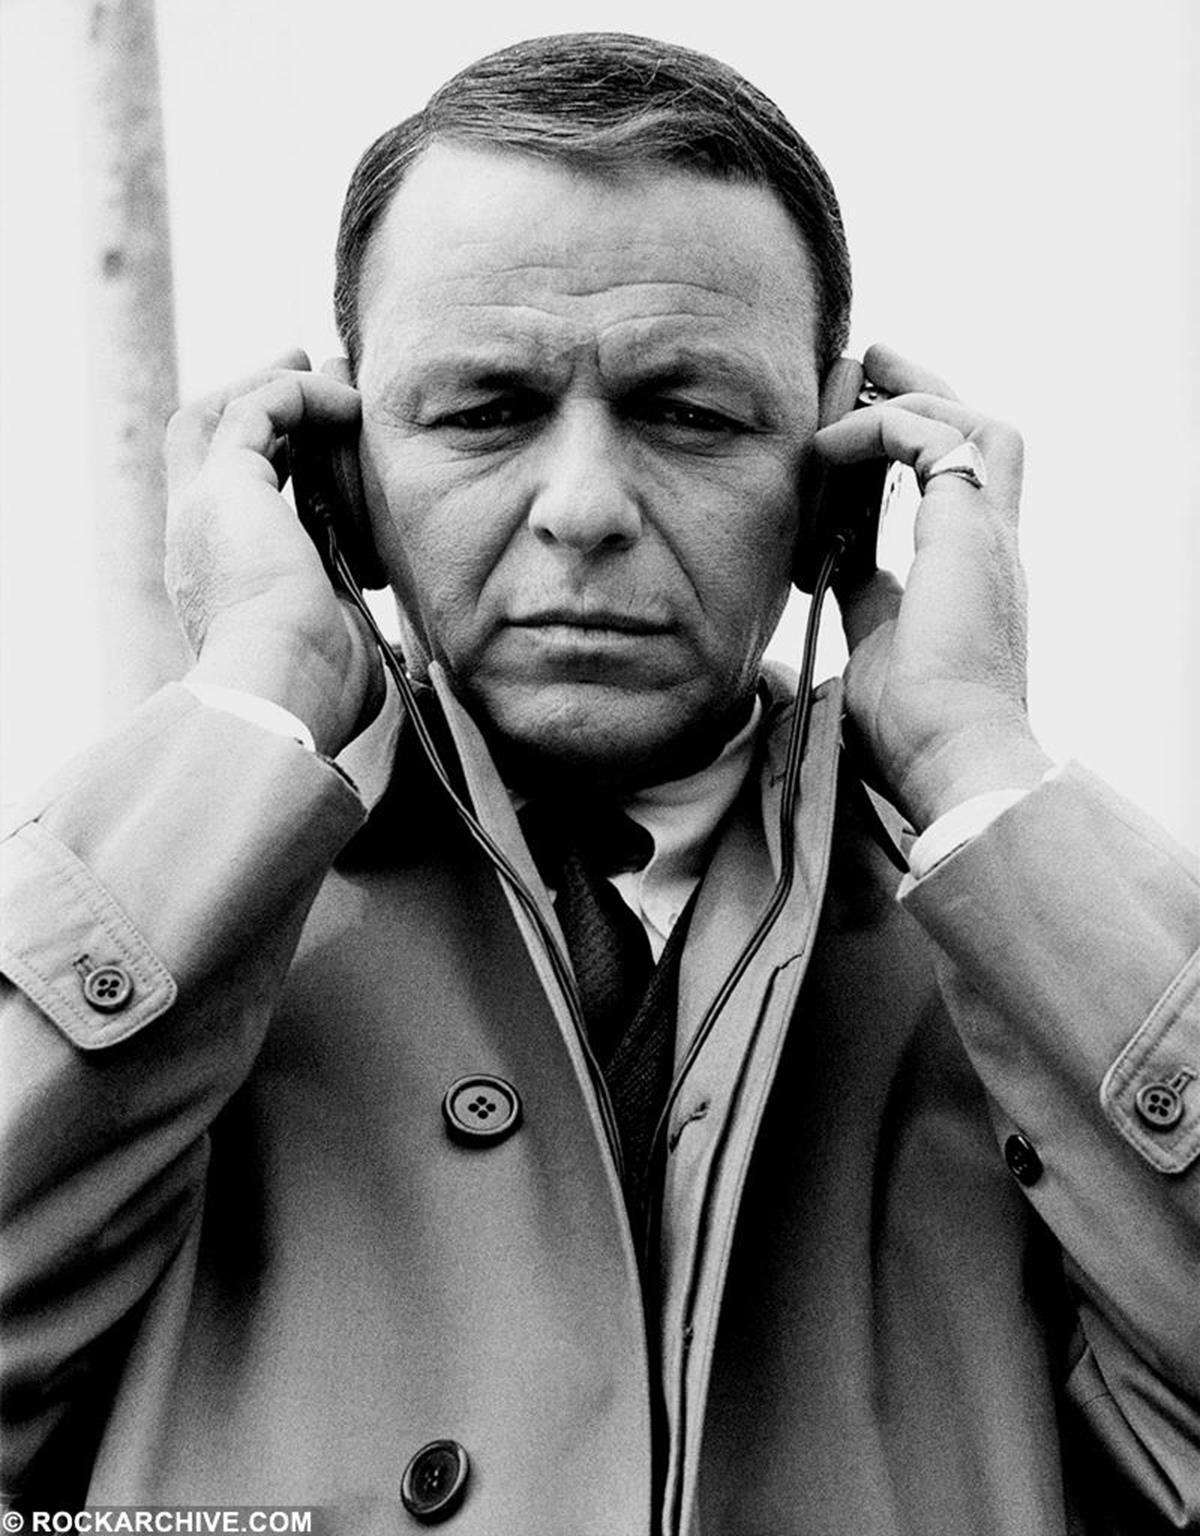 Frank Sinatra on the film set of the Sidney J. Furie film 'The Naked Runner' in 1967. © Allan Ballard